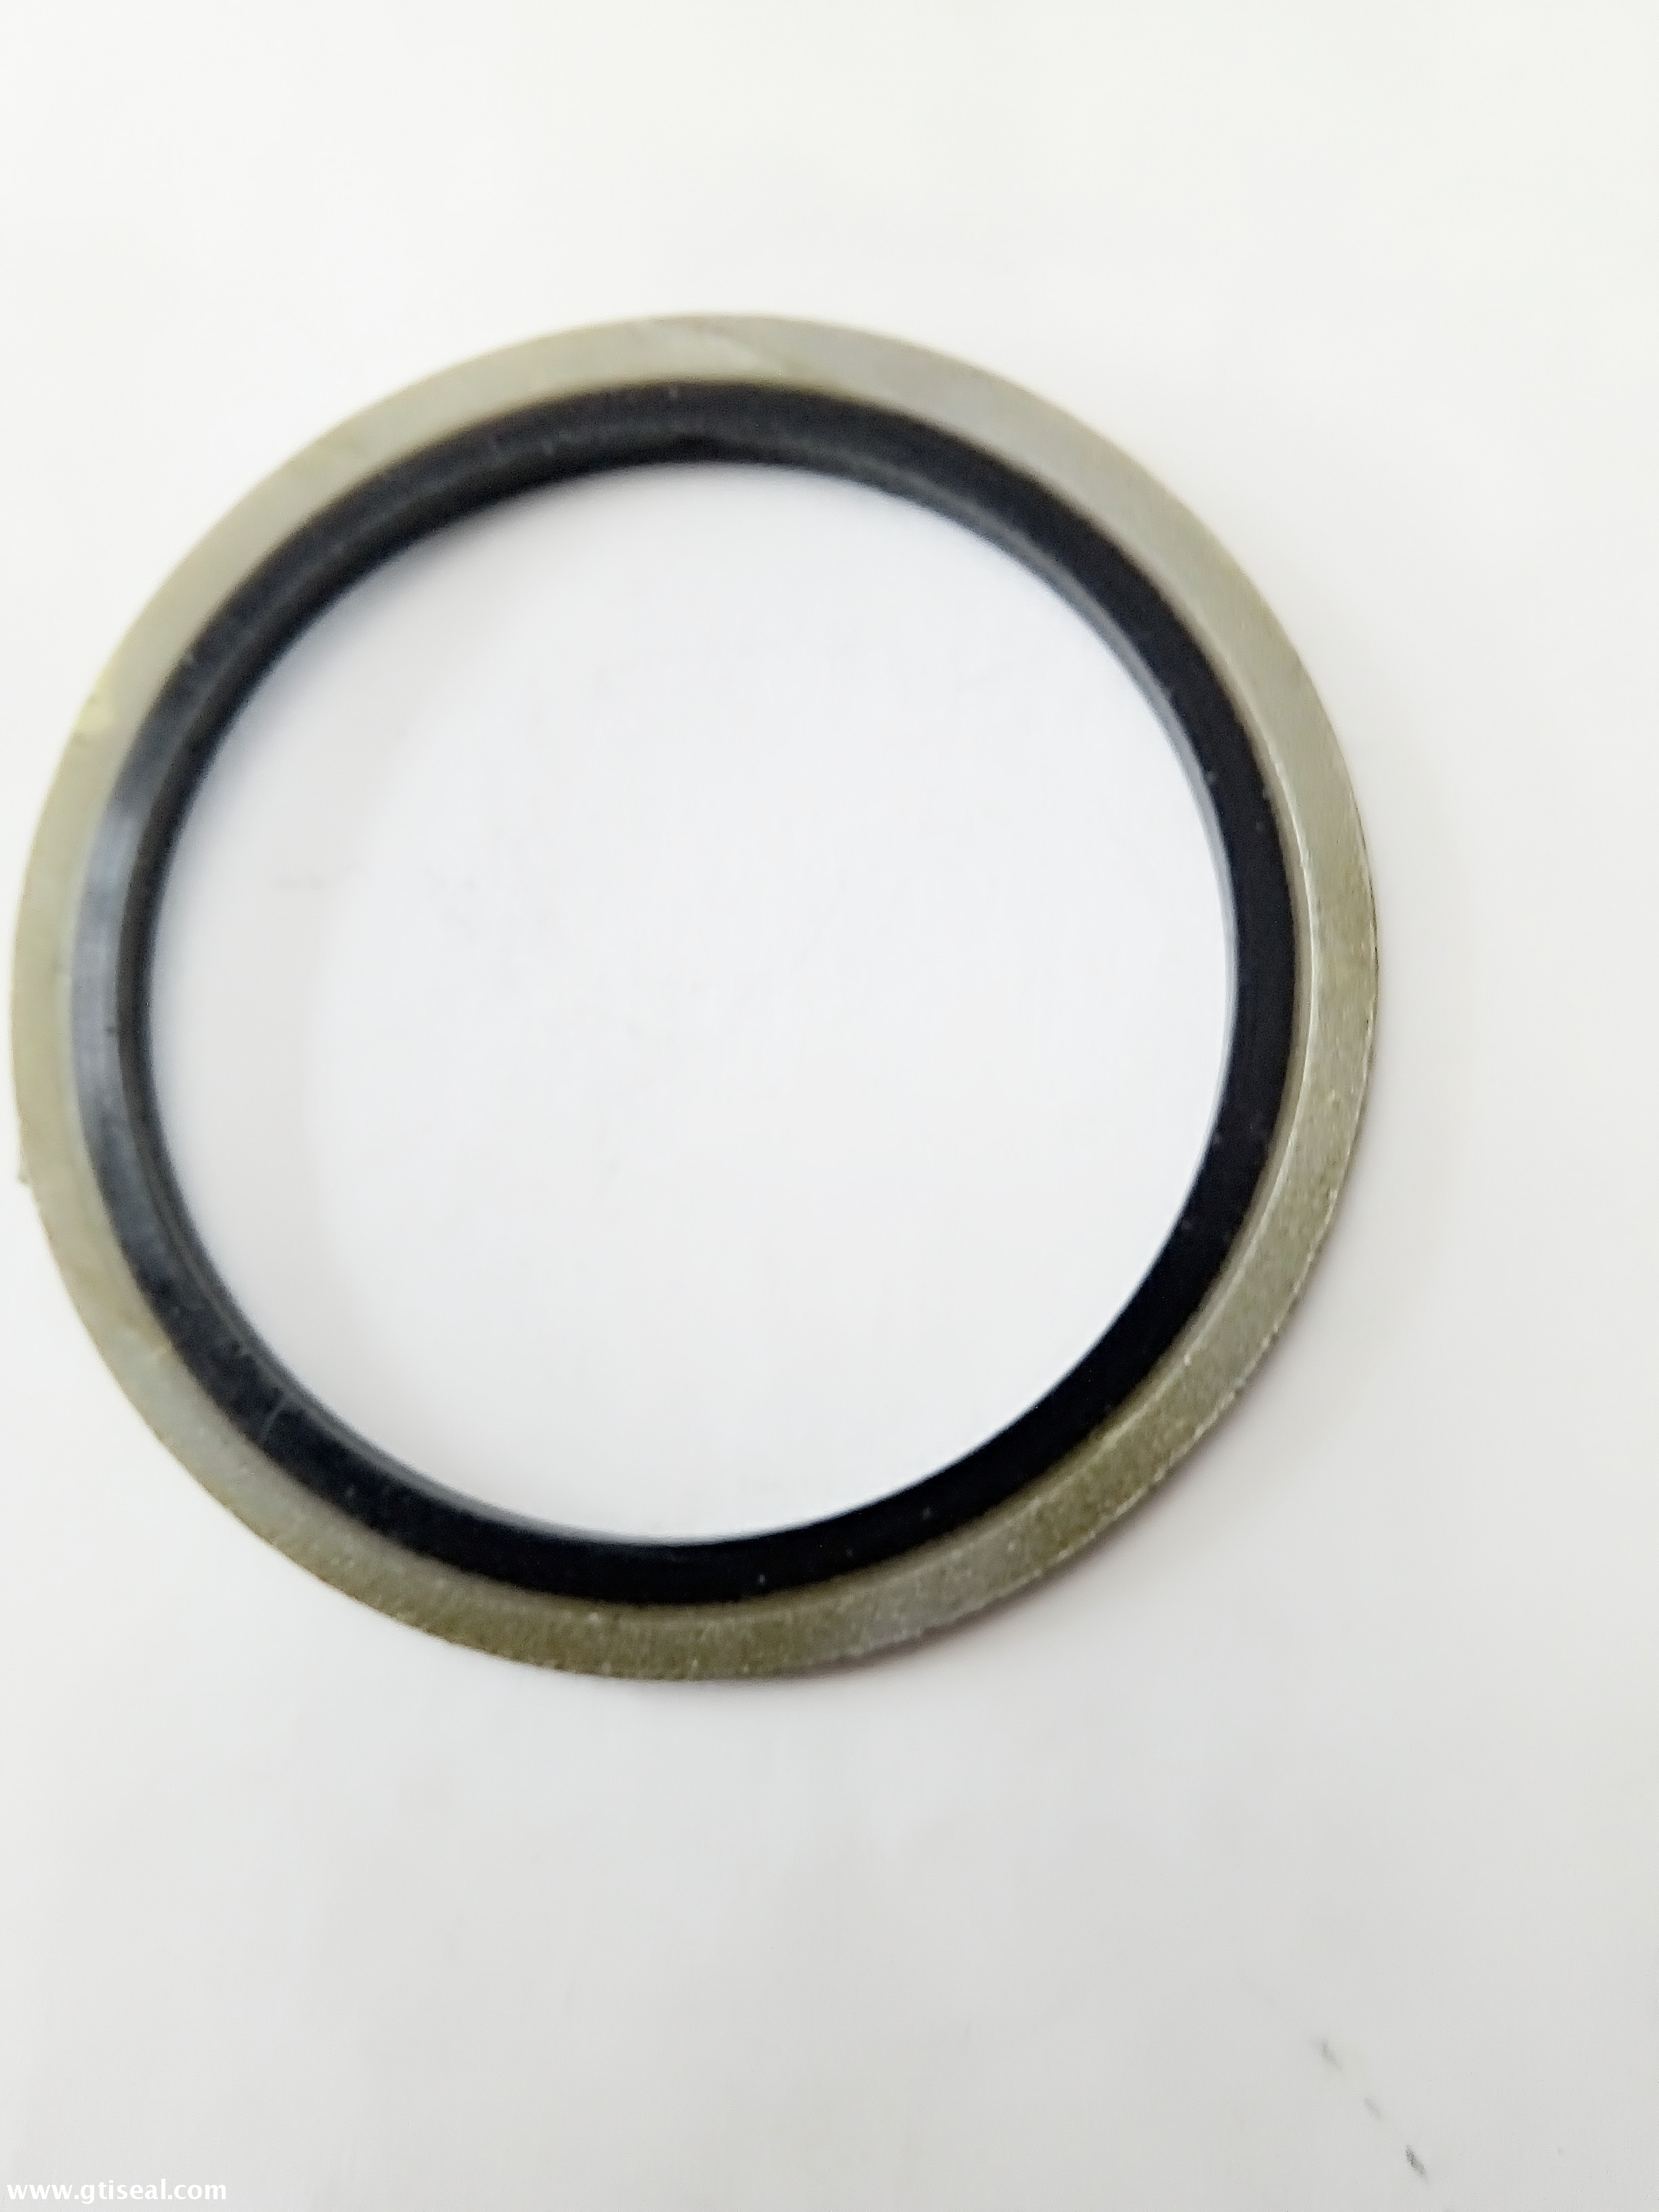 stainless steel rubber NBR bonded seals/bonded seal washer l - Buy ...